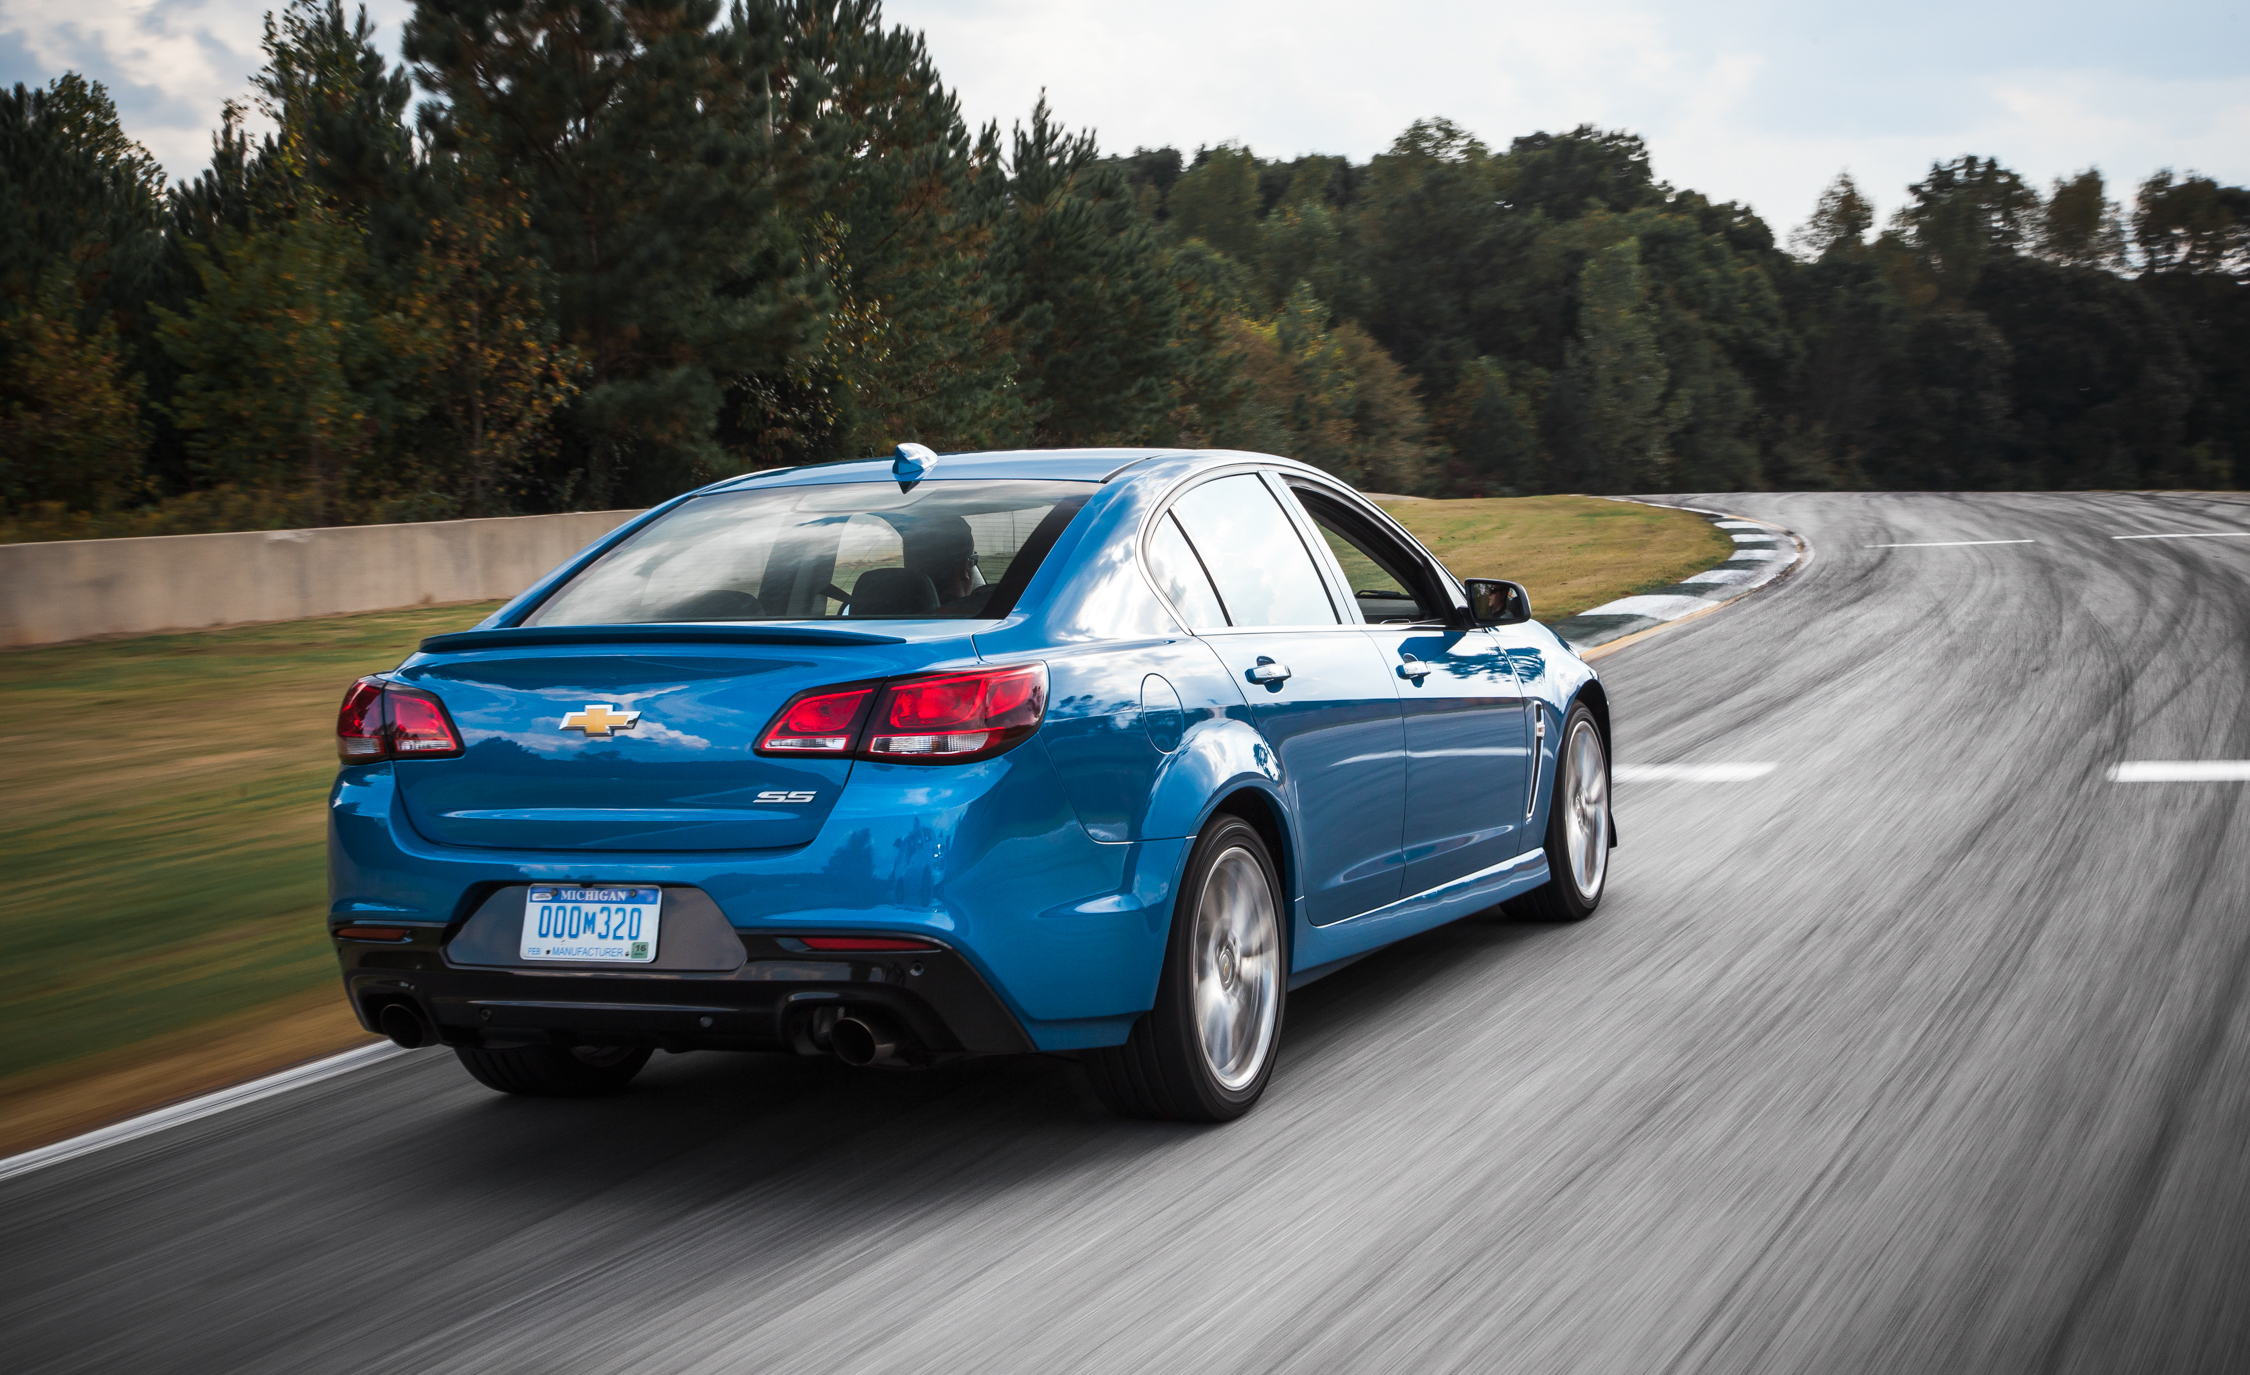 2015 Chevrolet SS Test Rear and Side View